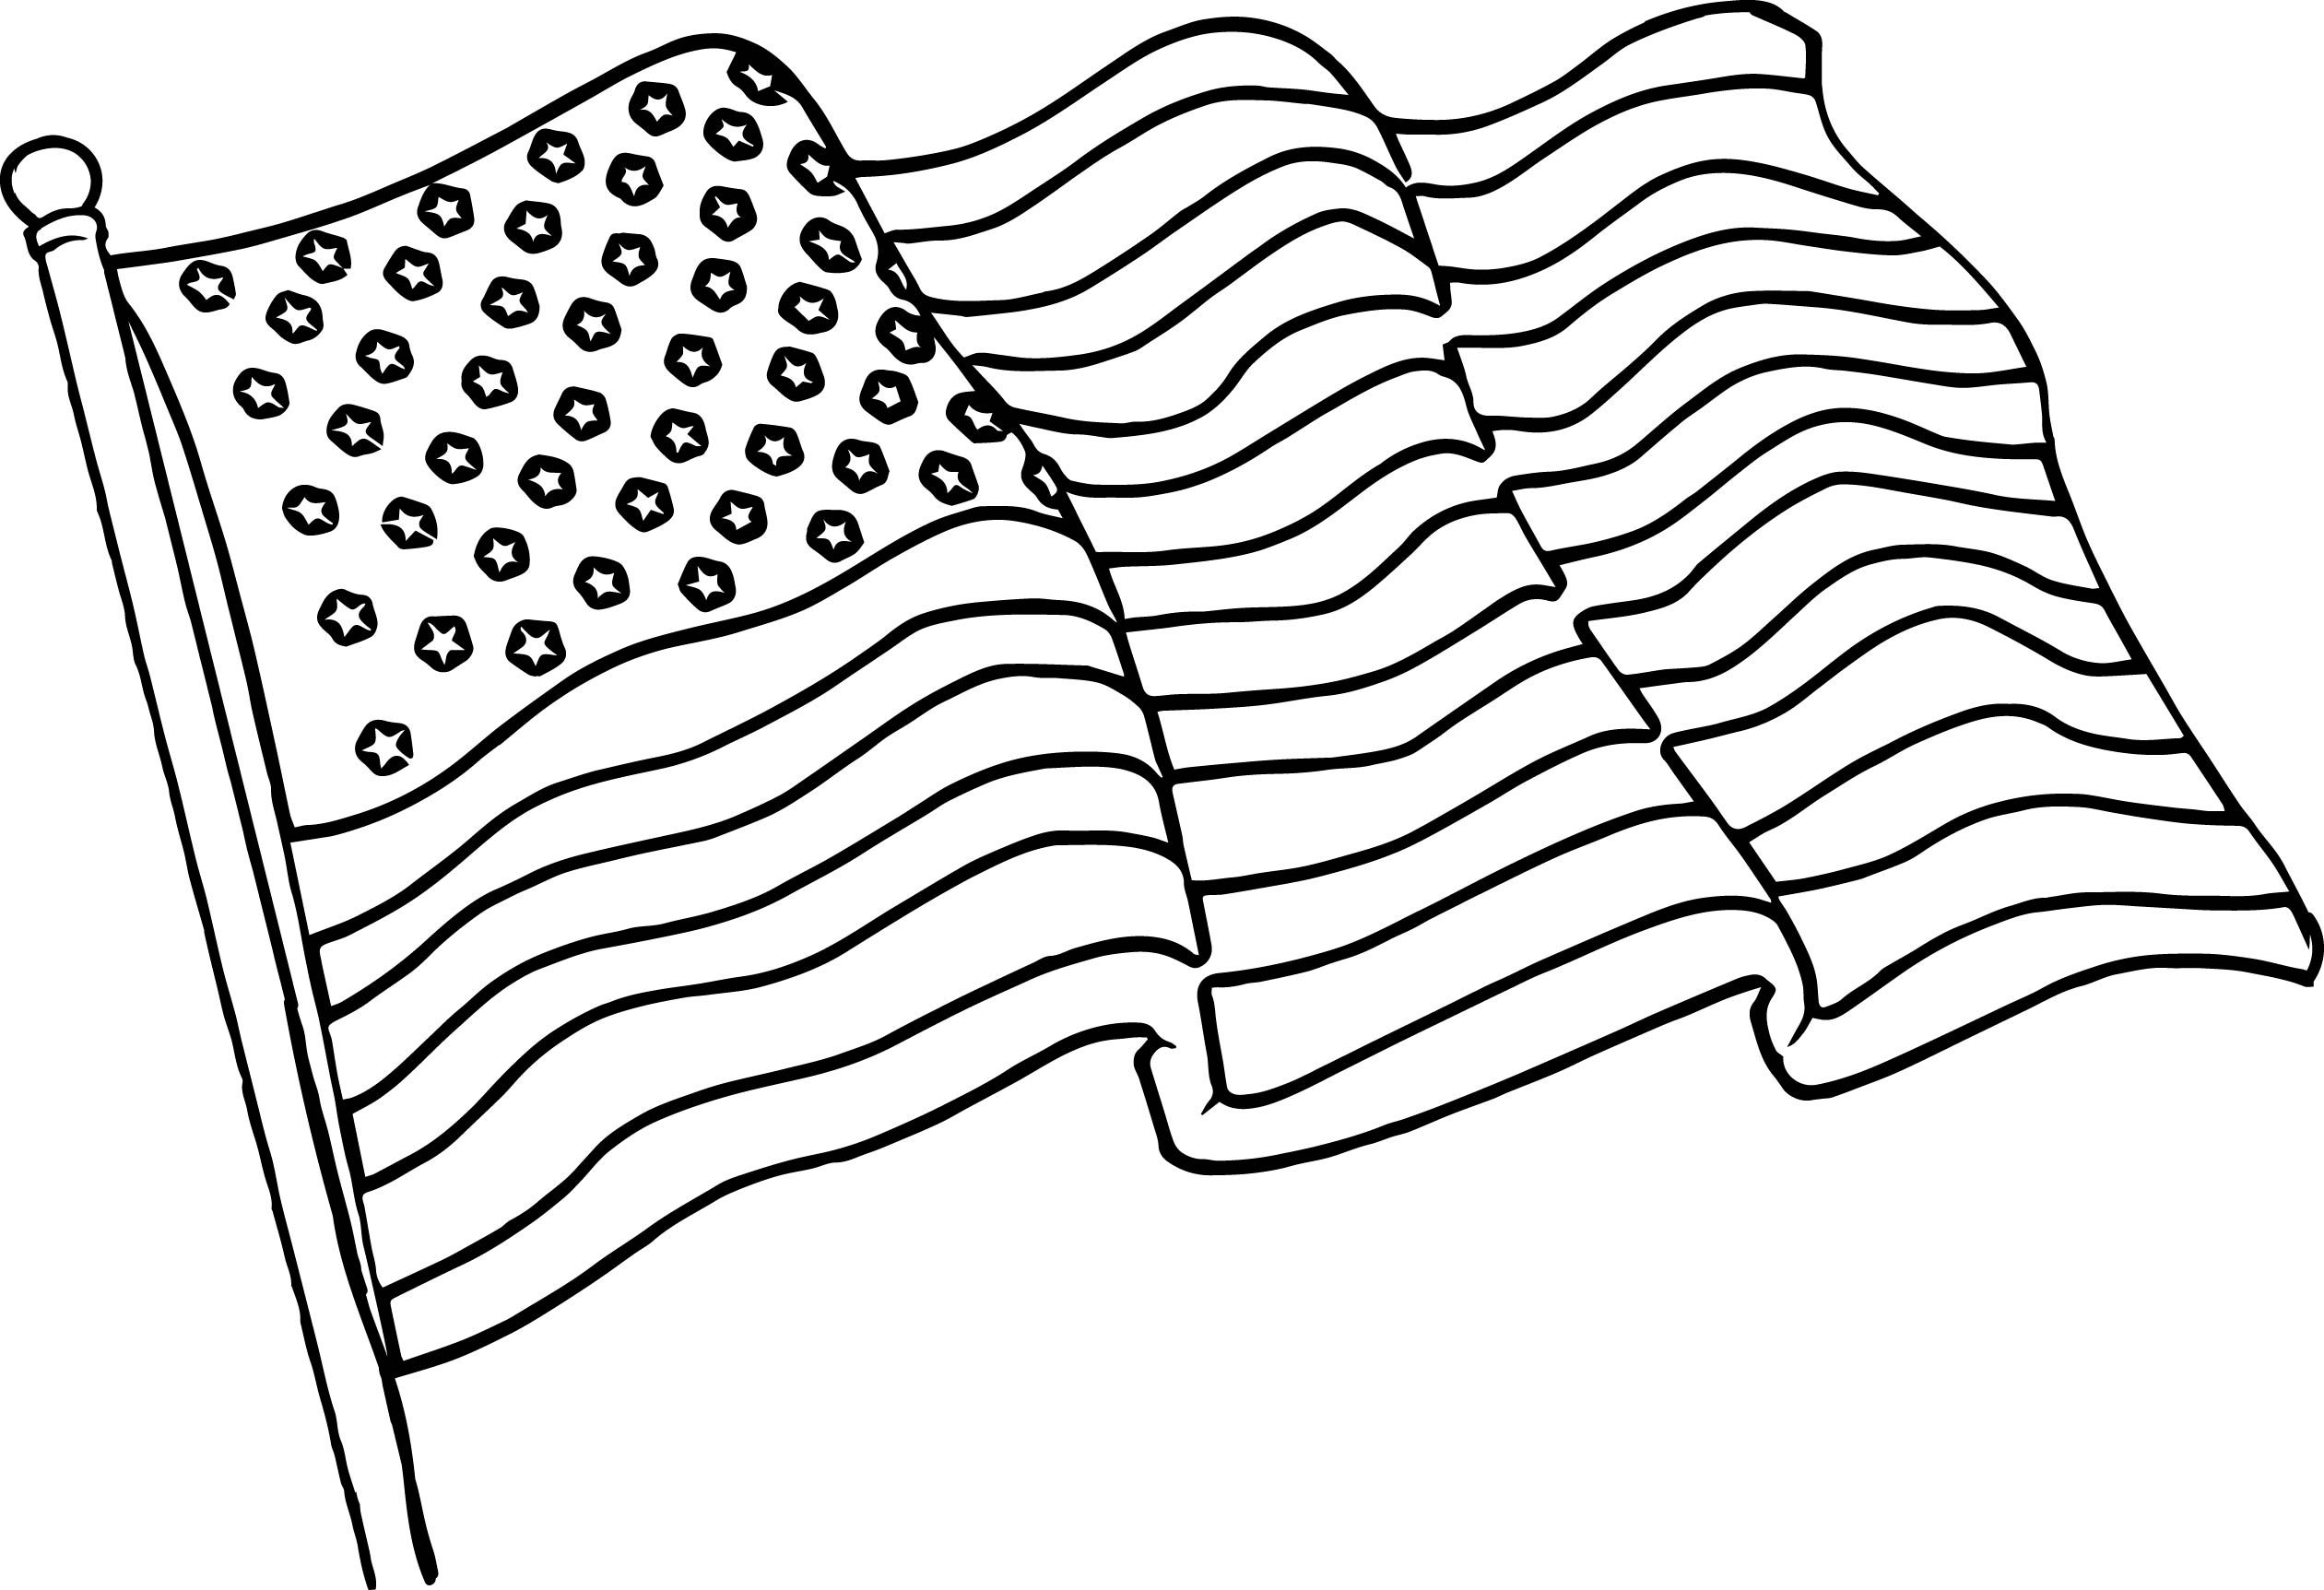 coloring page american flag american flag coloring page for the love of the country page flag american coloring